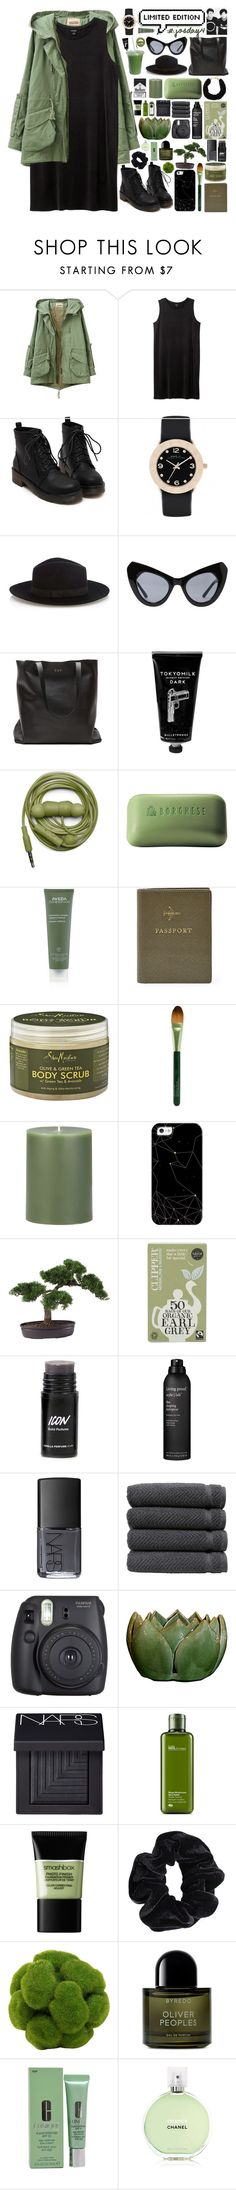 """""""all we did was care for each other"""" by valismyname on Polyvore featuring Monki, Marc by Marc Jacobs, Warehouse, UNIF, TokyoMilk, Urbanears, Borghese, Aveda, FOSSIL and SheaMoisture"""